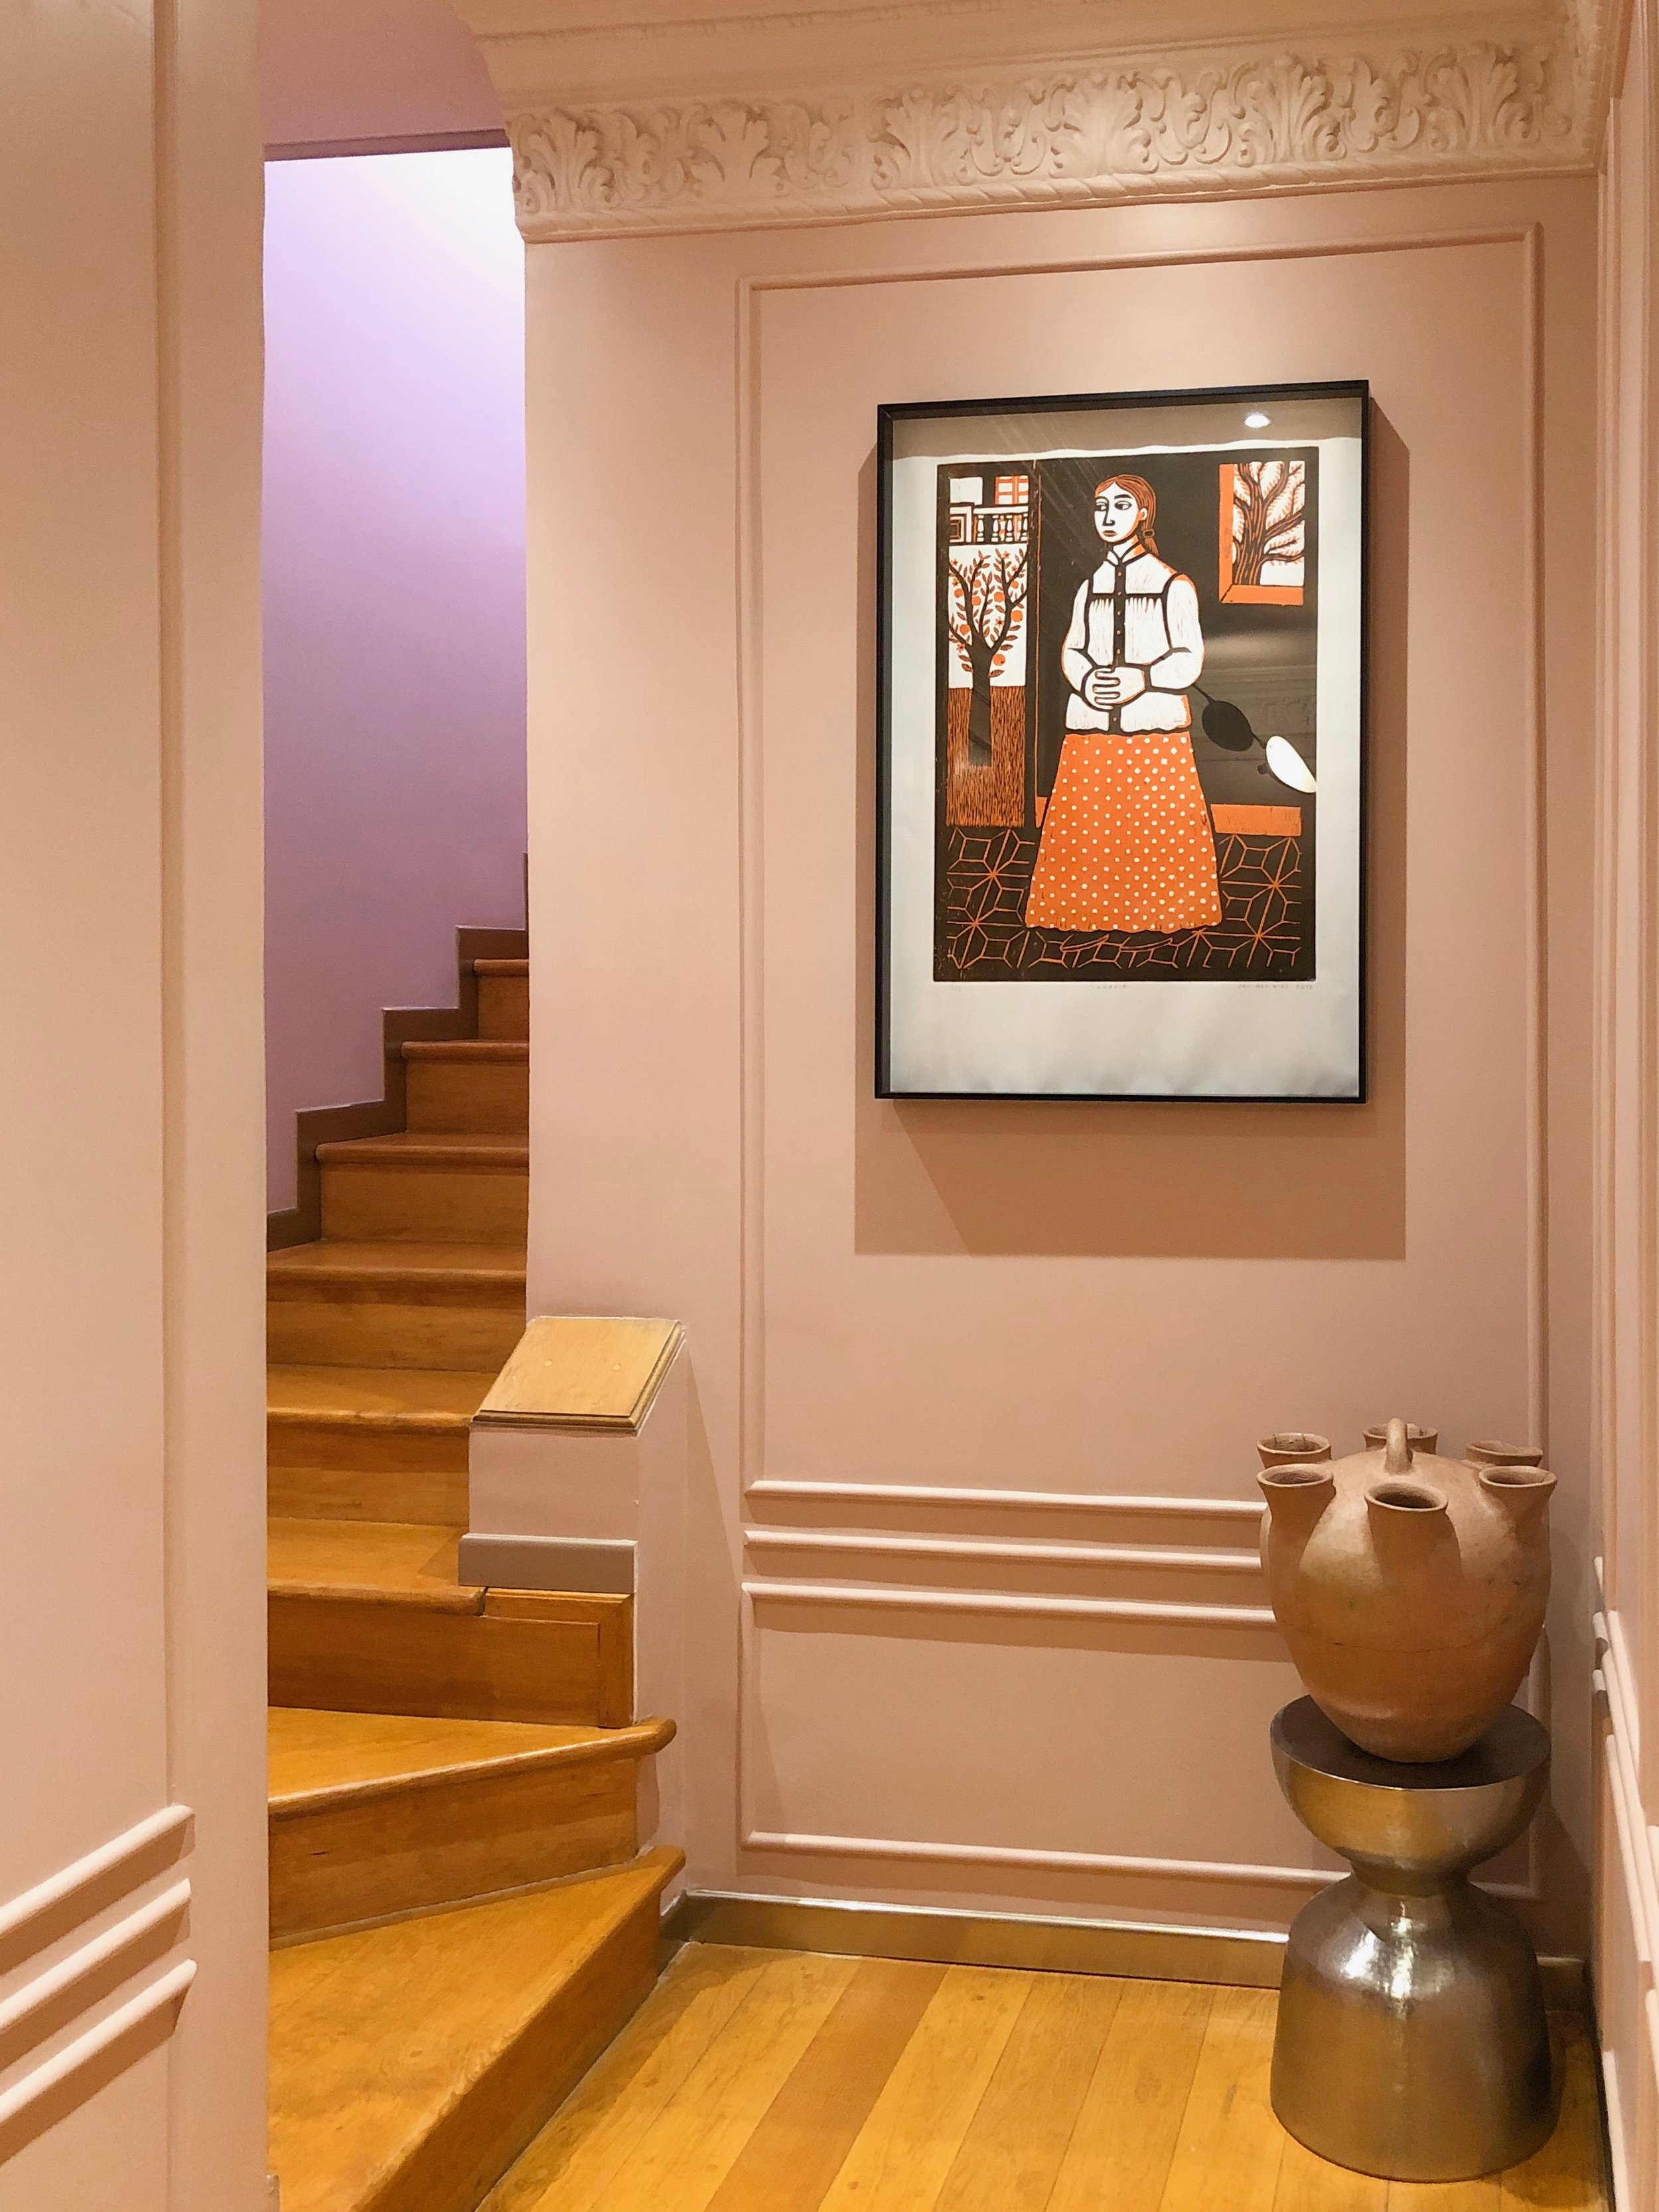 This woodcut, off the check-in area, shows the beloved housekeeper-cook-nanny Ignacia as a young woman